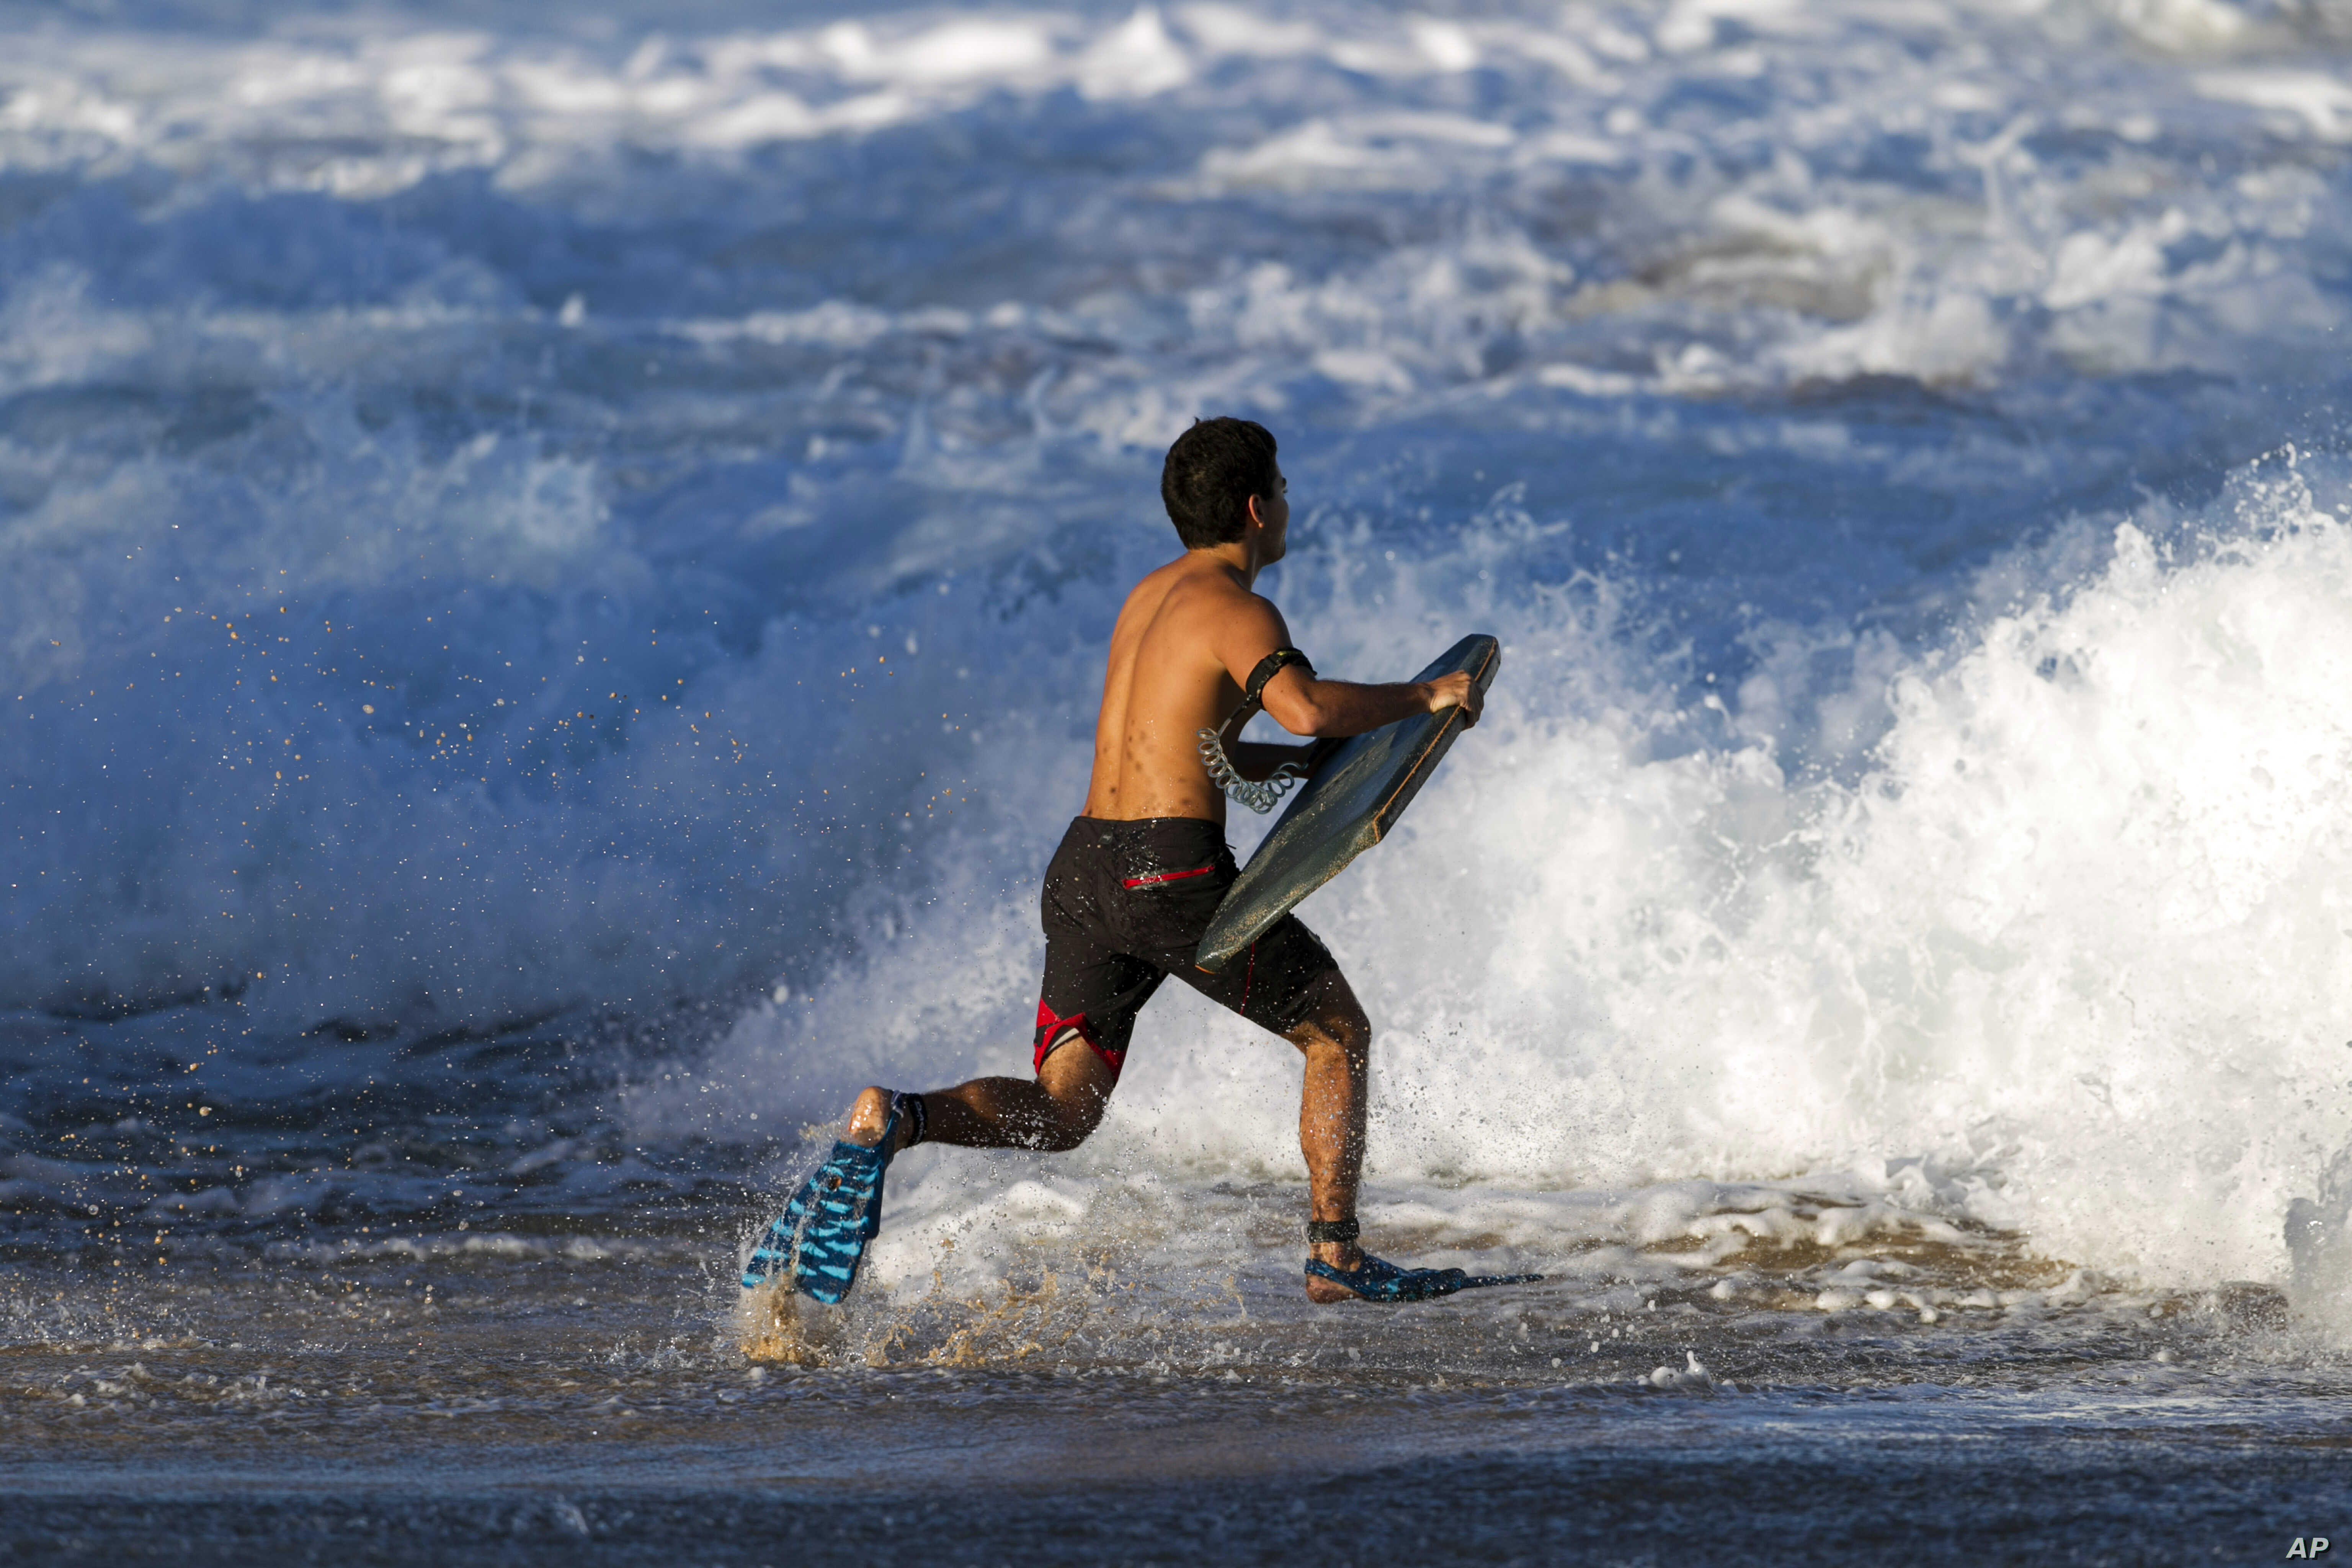 Hawaii's Big Wave Surf Competition Called Off | Voice of America